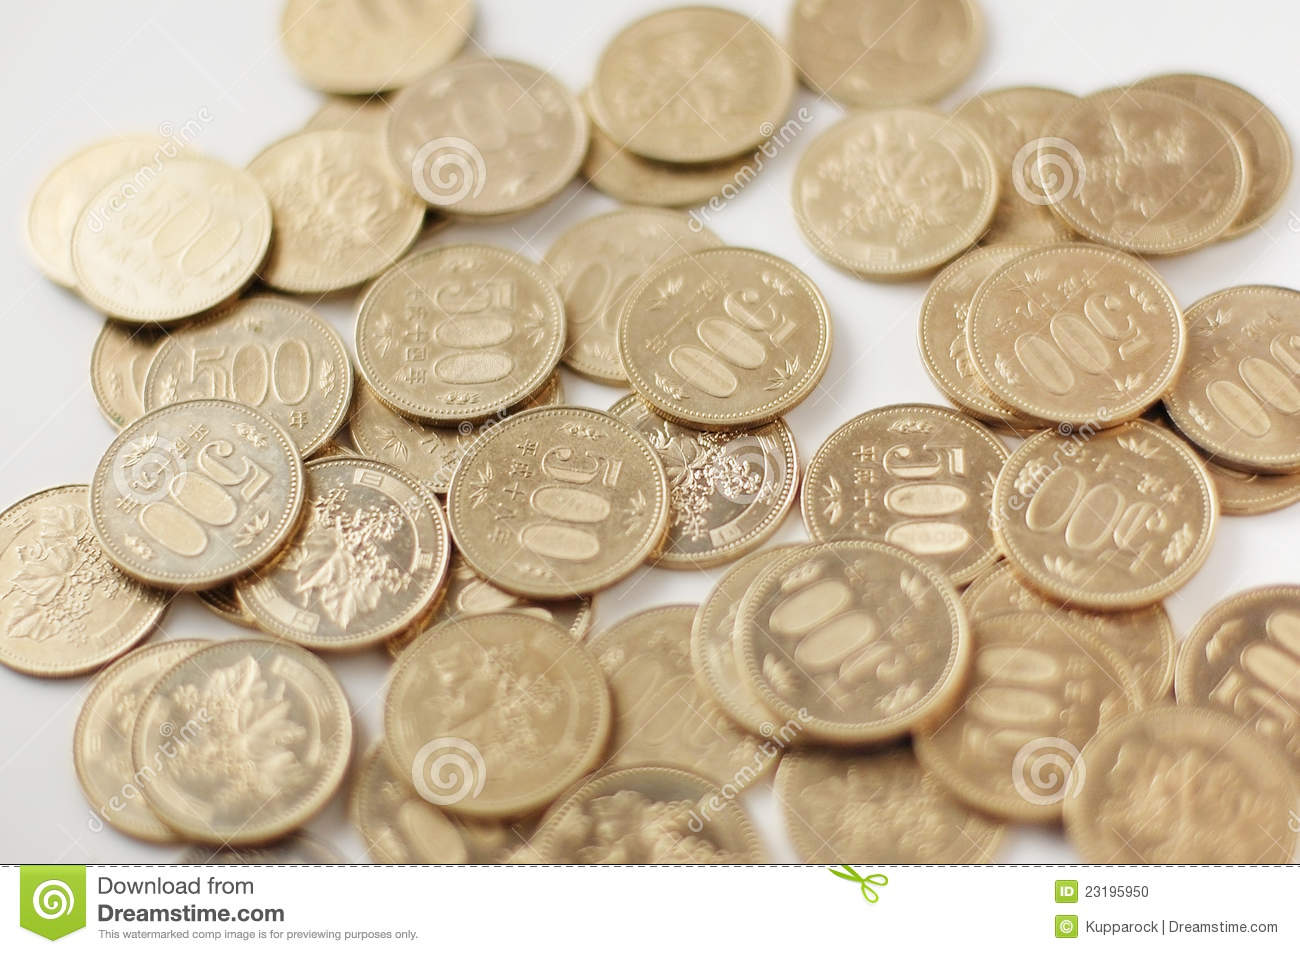 worksheet Yen Coins 500 yen coin stock photos images pictures 48 japanese coins photo